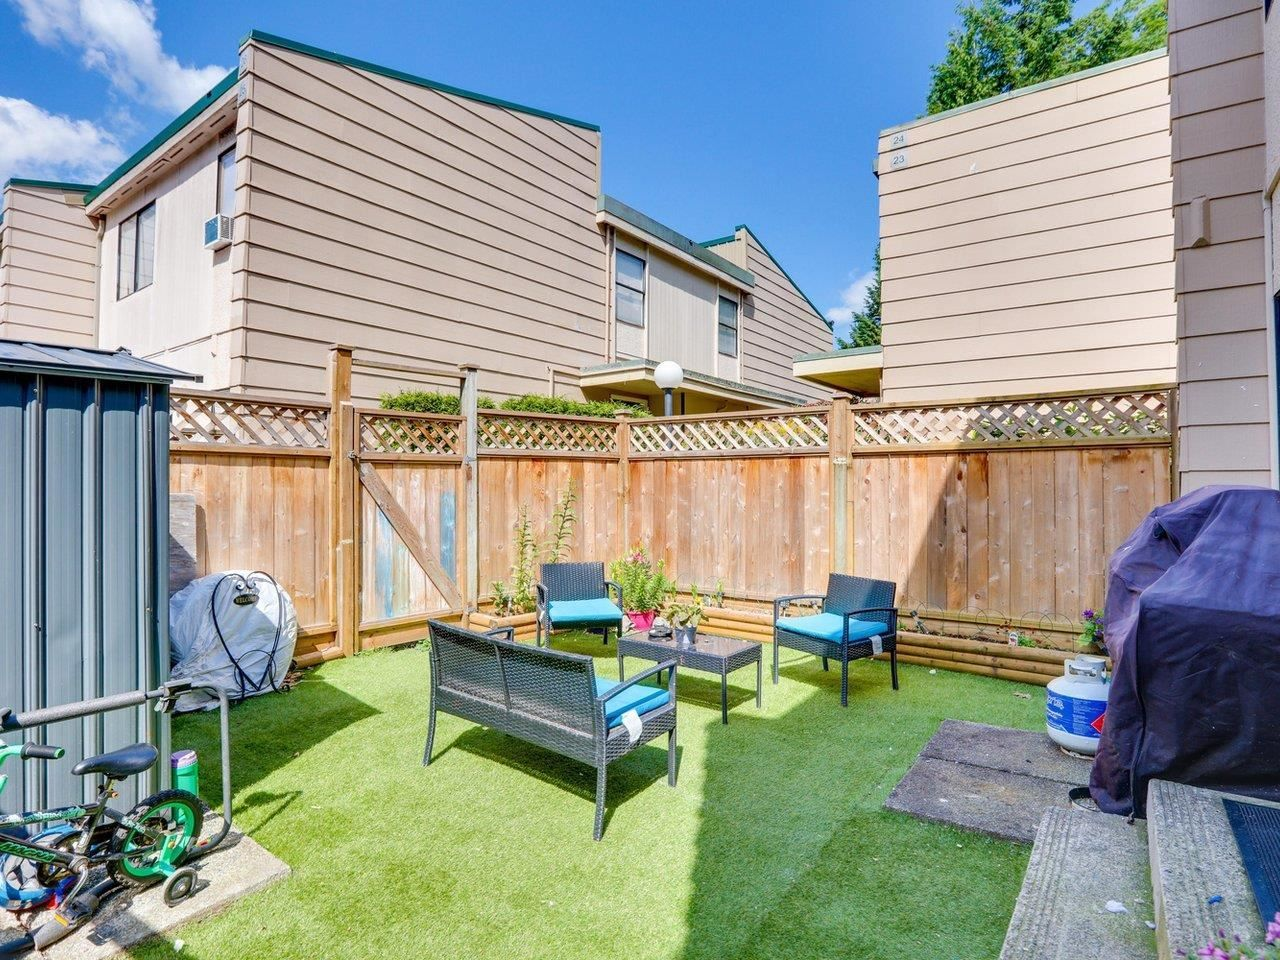 """Photo 19: Photos: 21 10585 153 Street in Surrey: Guildford Townhouse for sale in """"Guildford Mews"""" (North Surrey)  : MLS®# R2593242"""